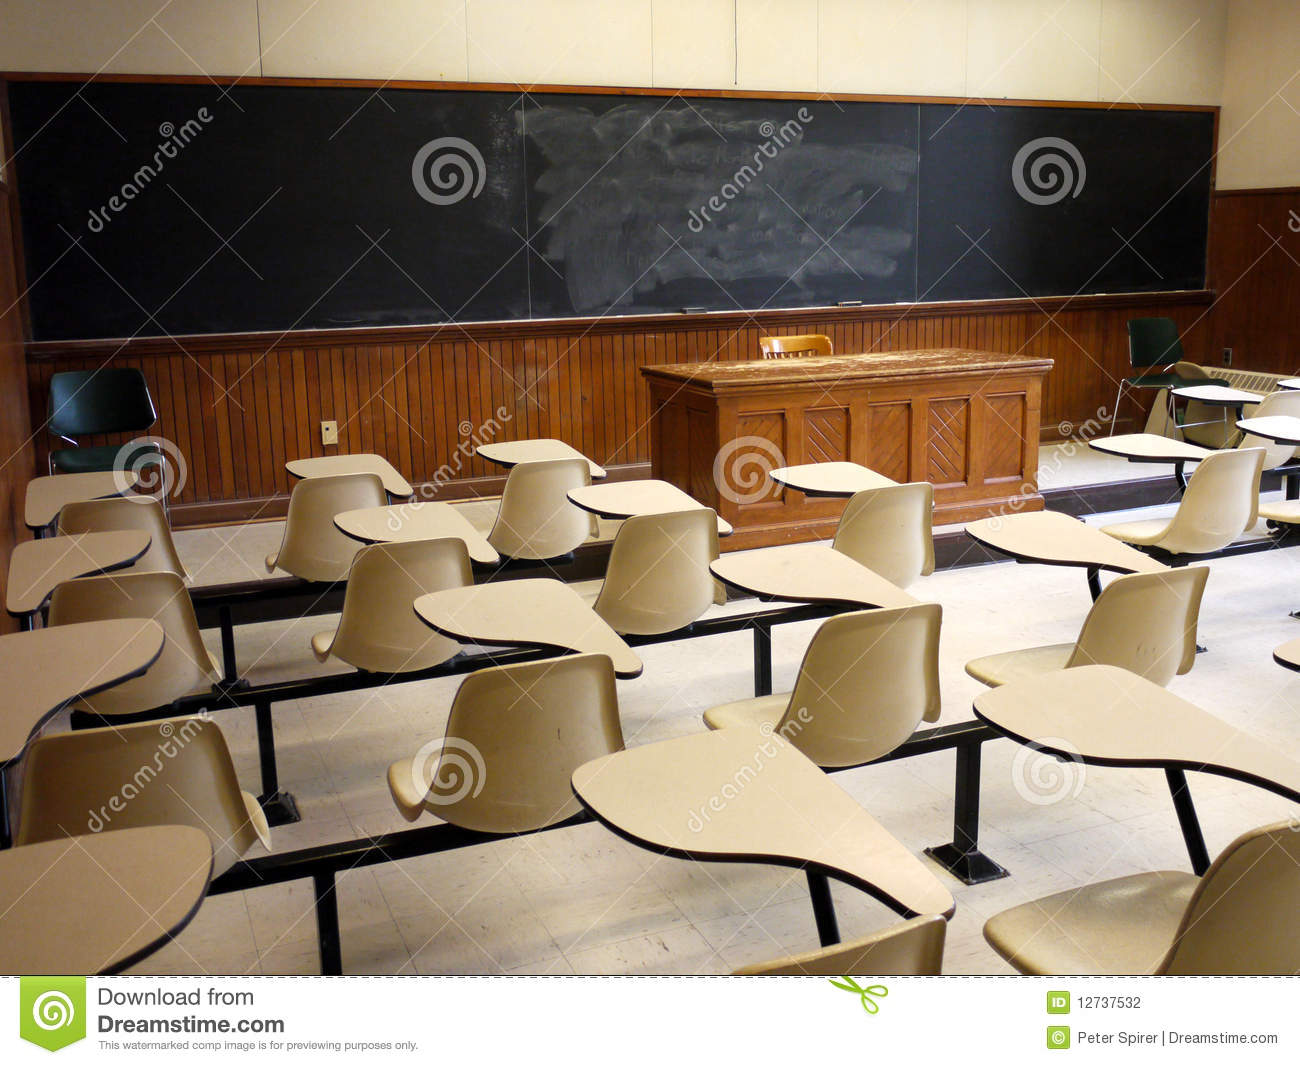 college classroom photos Central carolina community college confucius classroom 21 likes 1 talking about this the confucius classroom at central carolina community college.